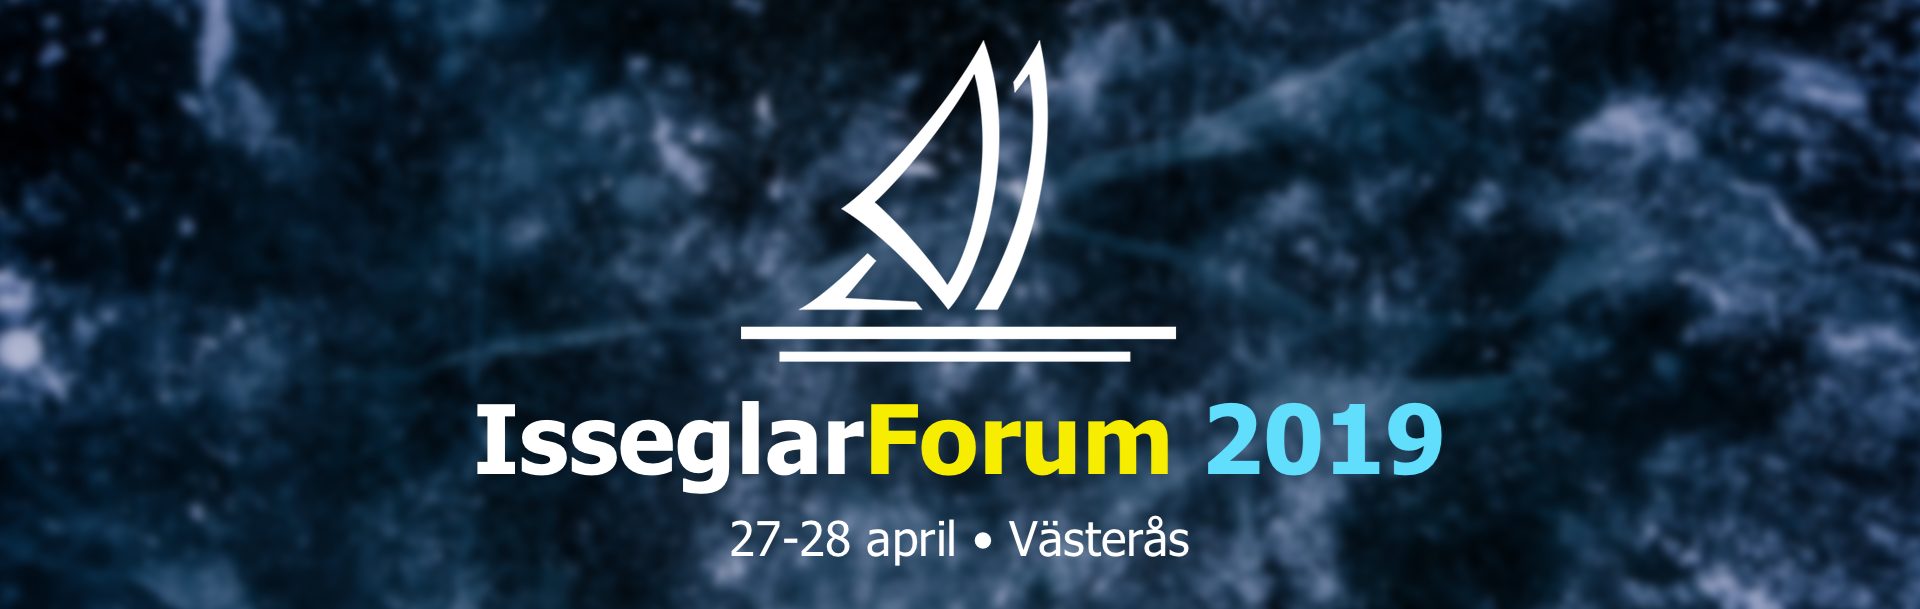 IsseglarForum 2019